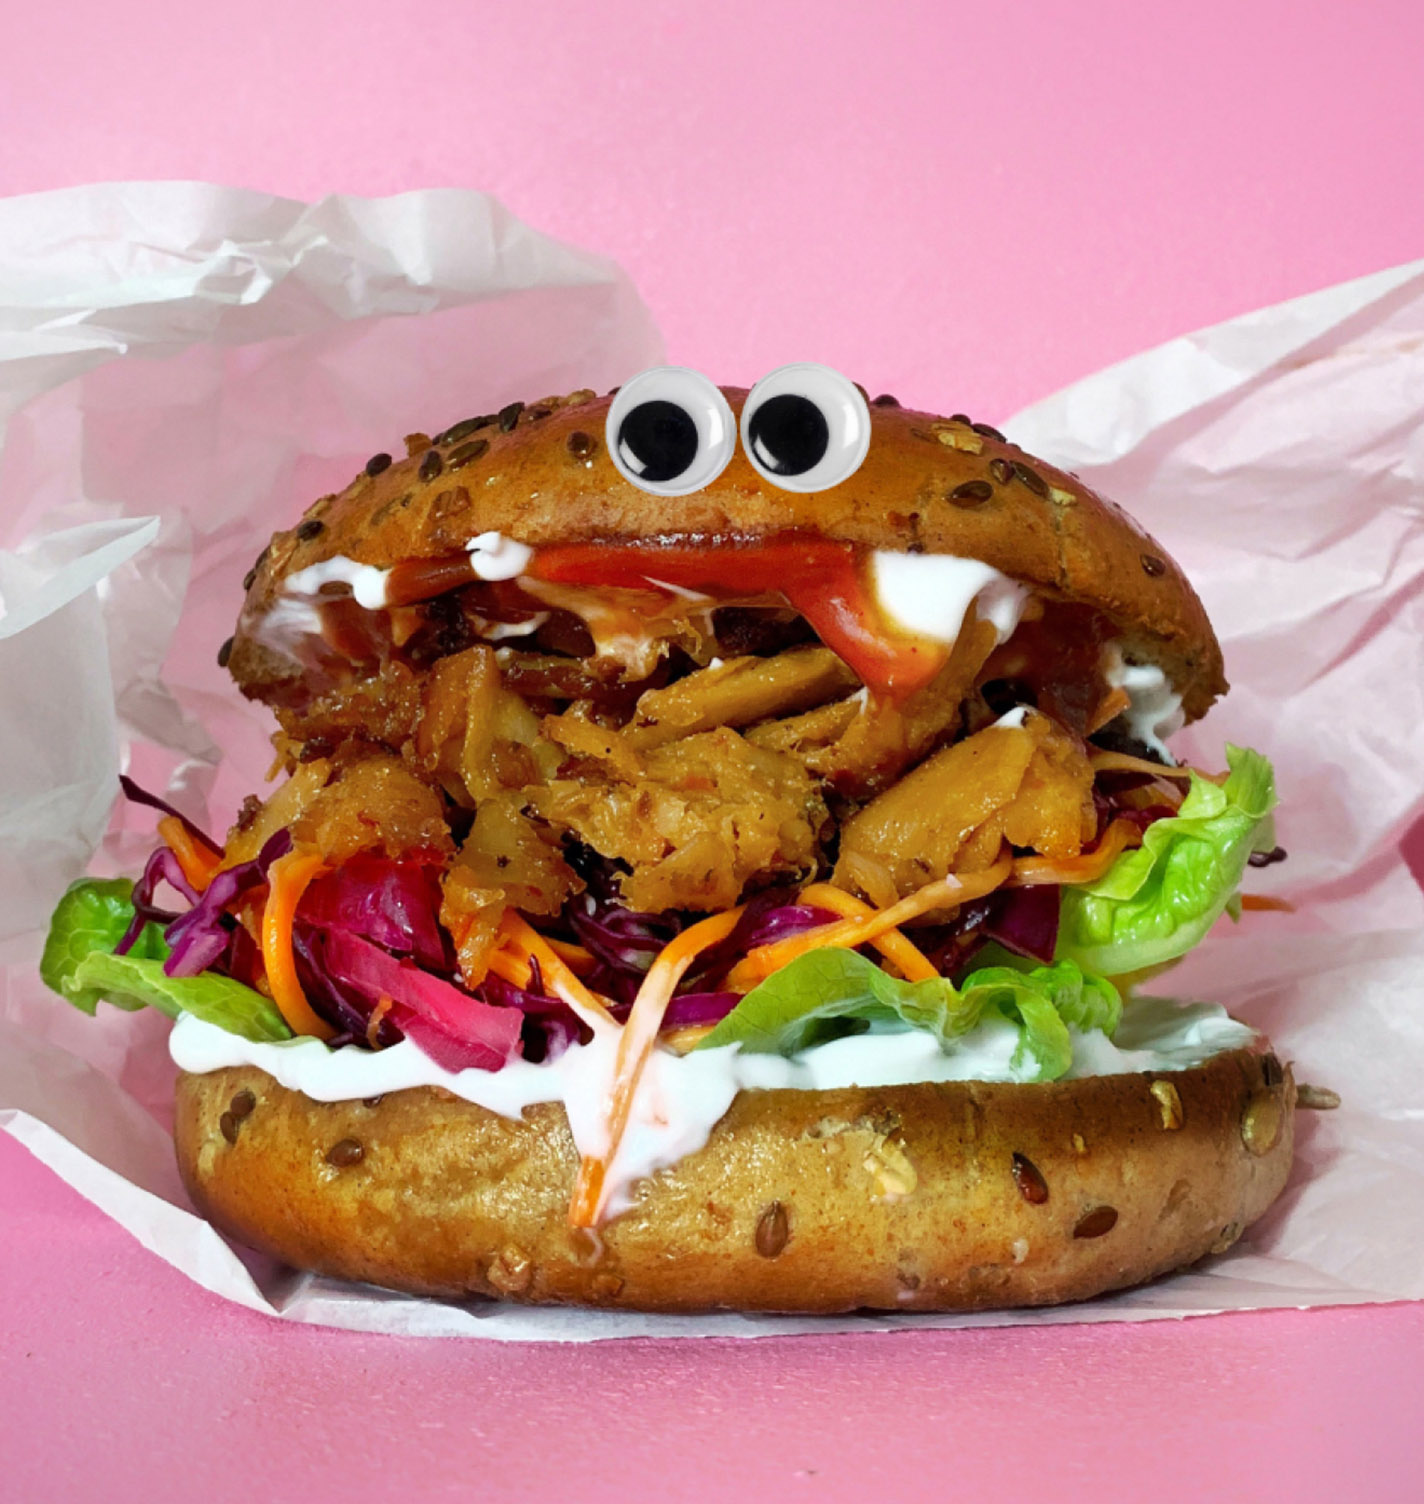 Burger with googly eyes and mayonnaise in paper wrapping on pink background